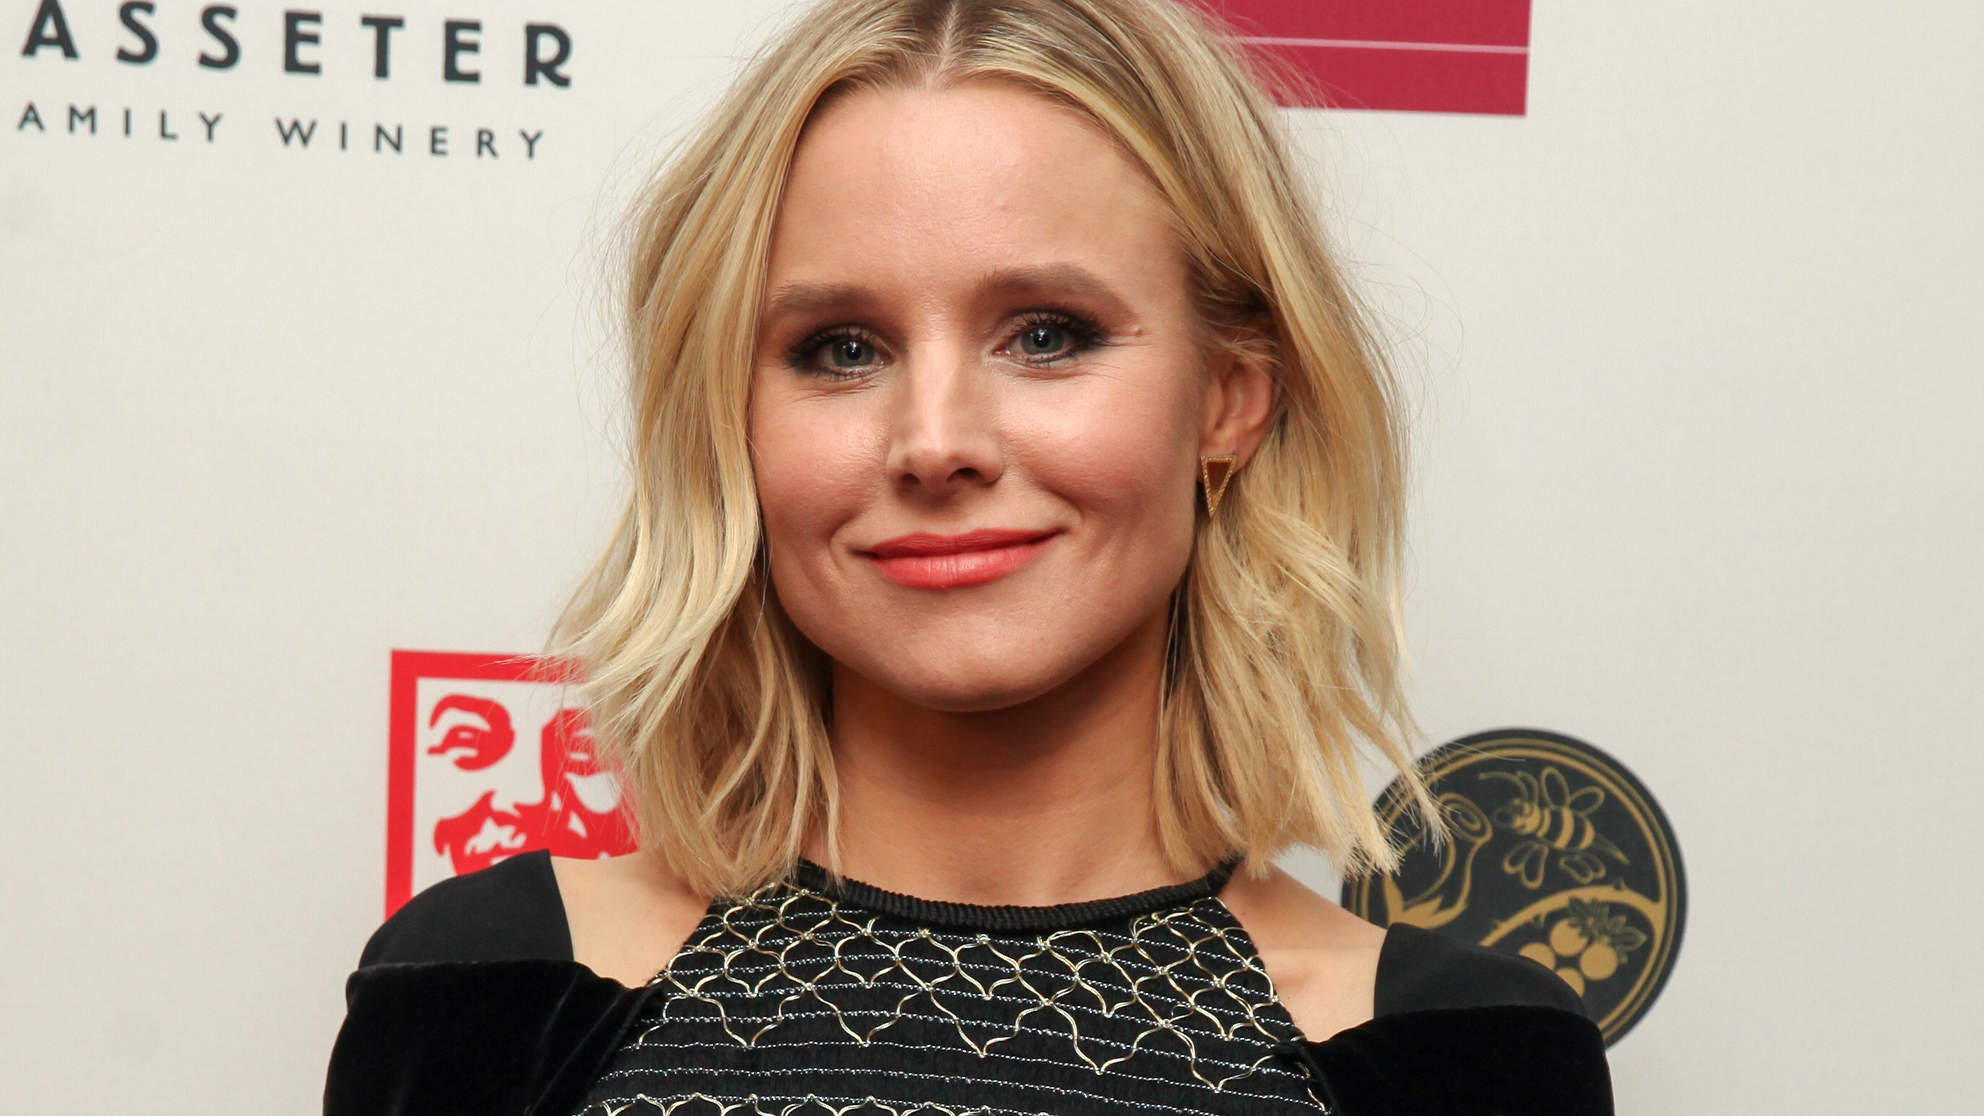 Kristen Bell Says CBD Lotion Helps Her Sore Muscles–But Does It Really Work?